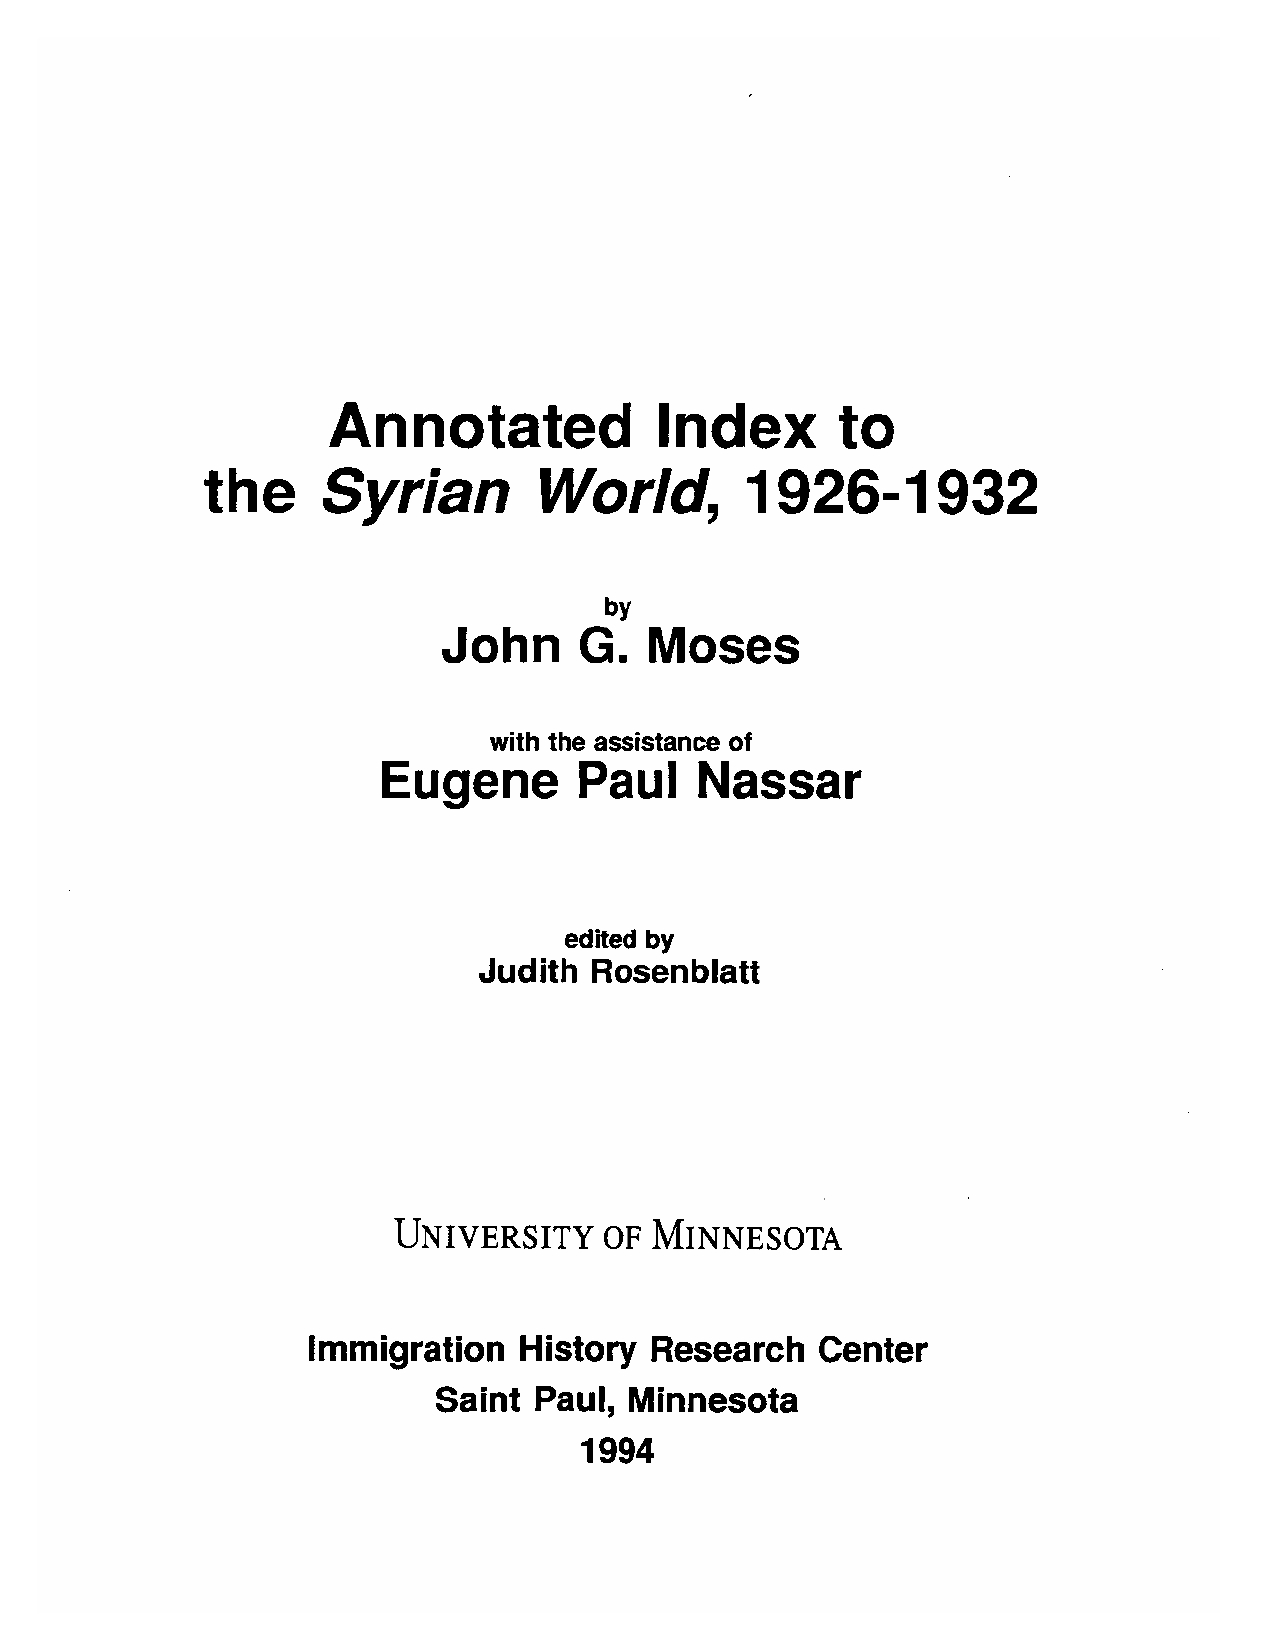 Annotated Index to The Syrian World, 1926-1932, with the assistance of Eugene Paul Nassar, edited by Judith Rosenblatt, Saint Paul, Minnesota: University of Minnesota - Immigration History Research Center, 1994.